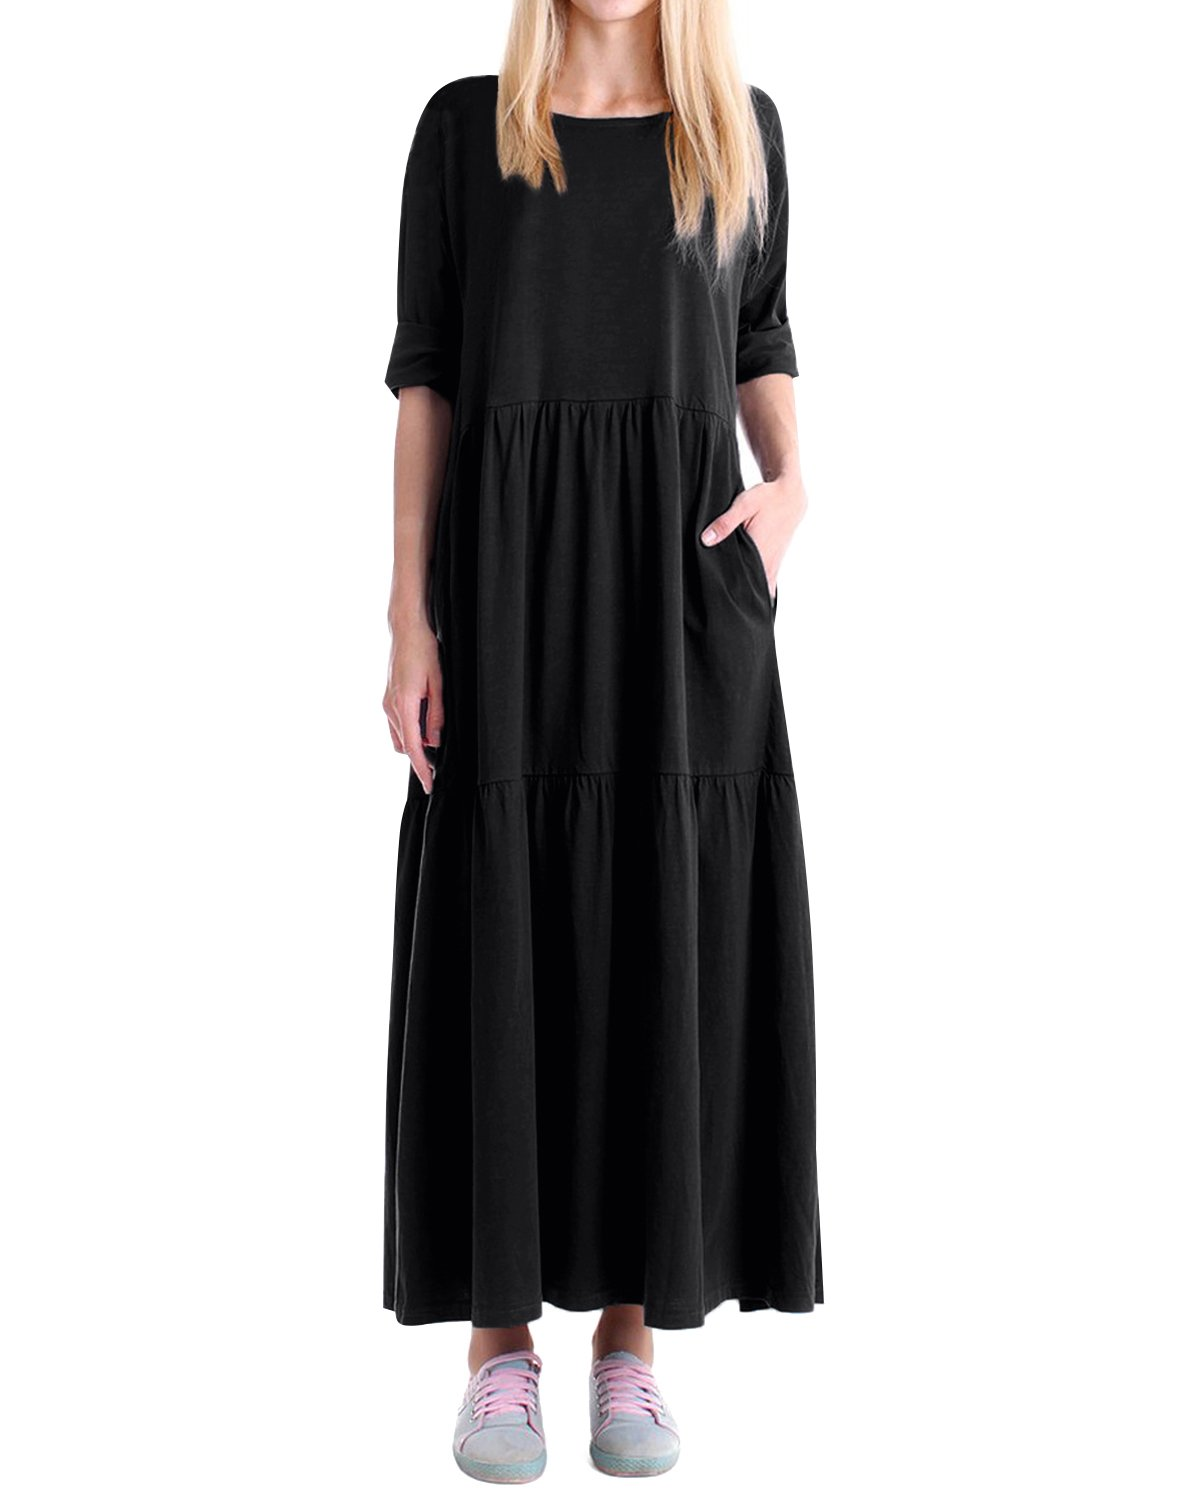 Kidsform Women Tiered Dress Round Neck 3/4 Sleeve Loose Long Maxi Dress With Pocket